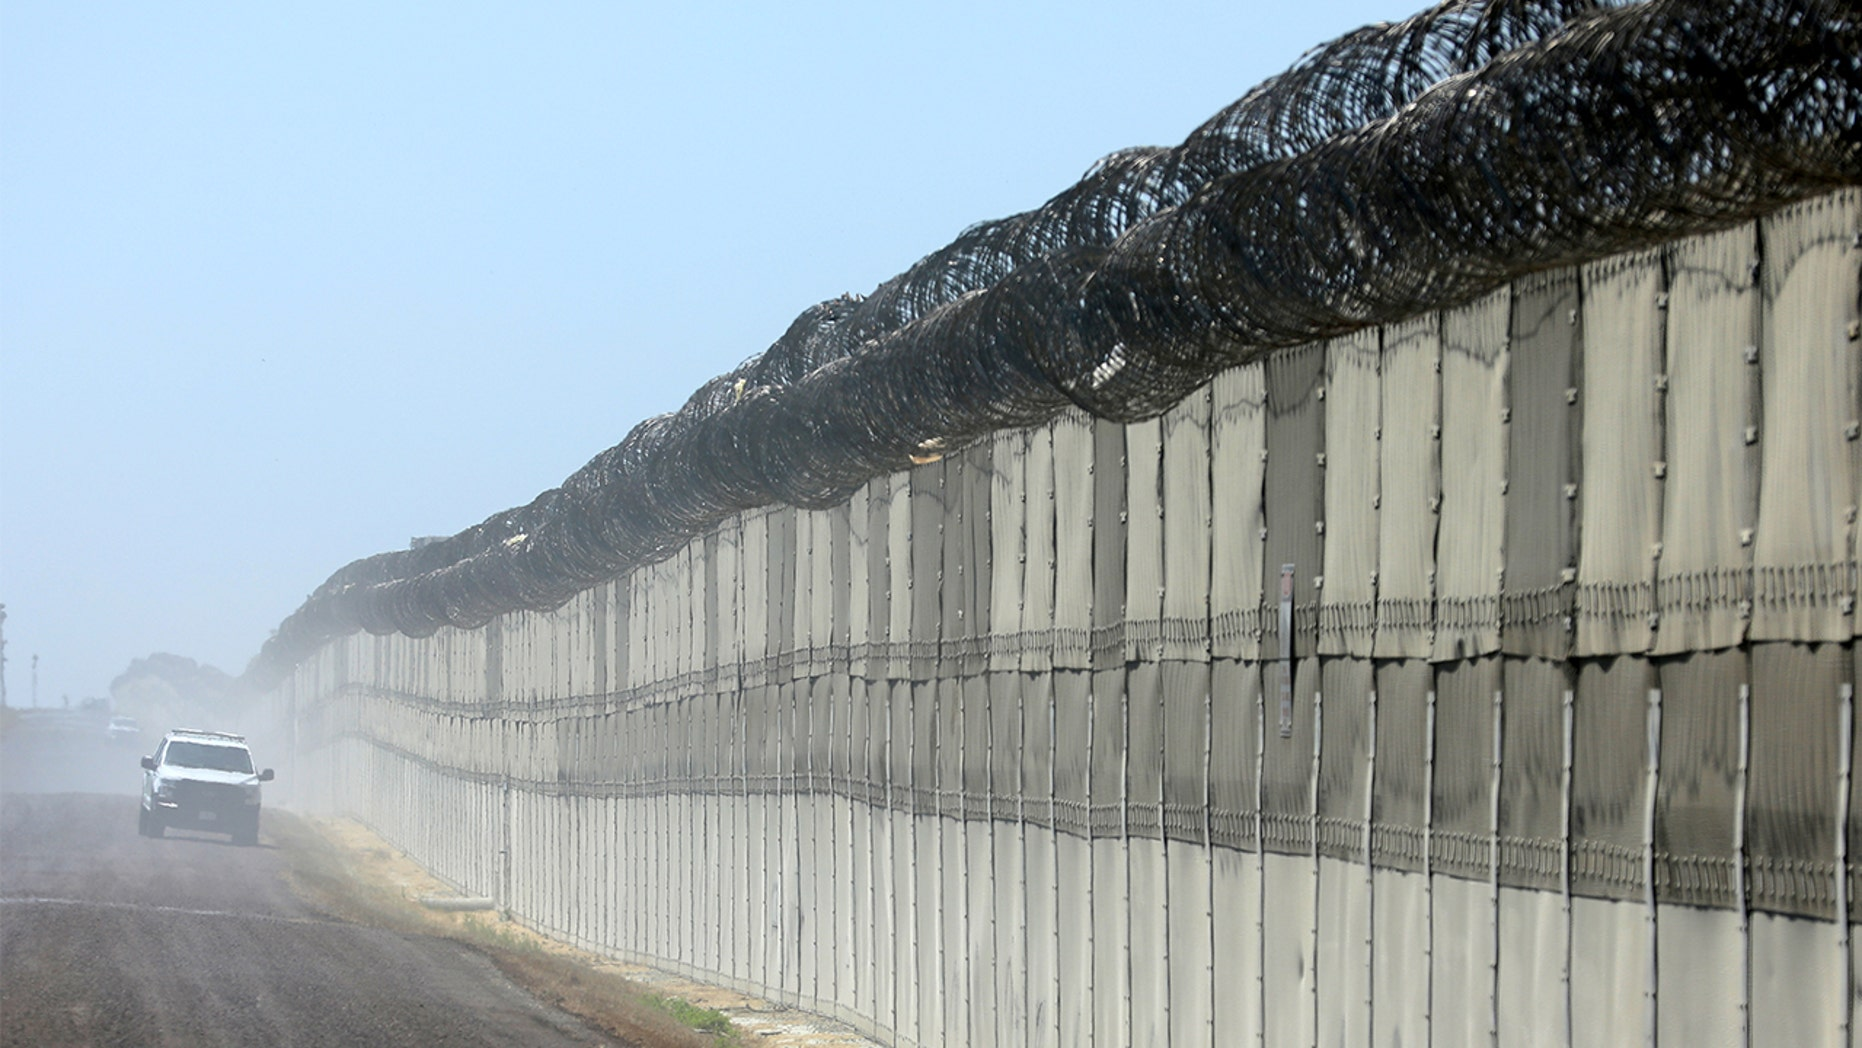 A U.S. border patrol agent fatally shot an illegal immigrant in Texas Wednesday, authorities said. File photo showing the fence along the U.S. southern border.